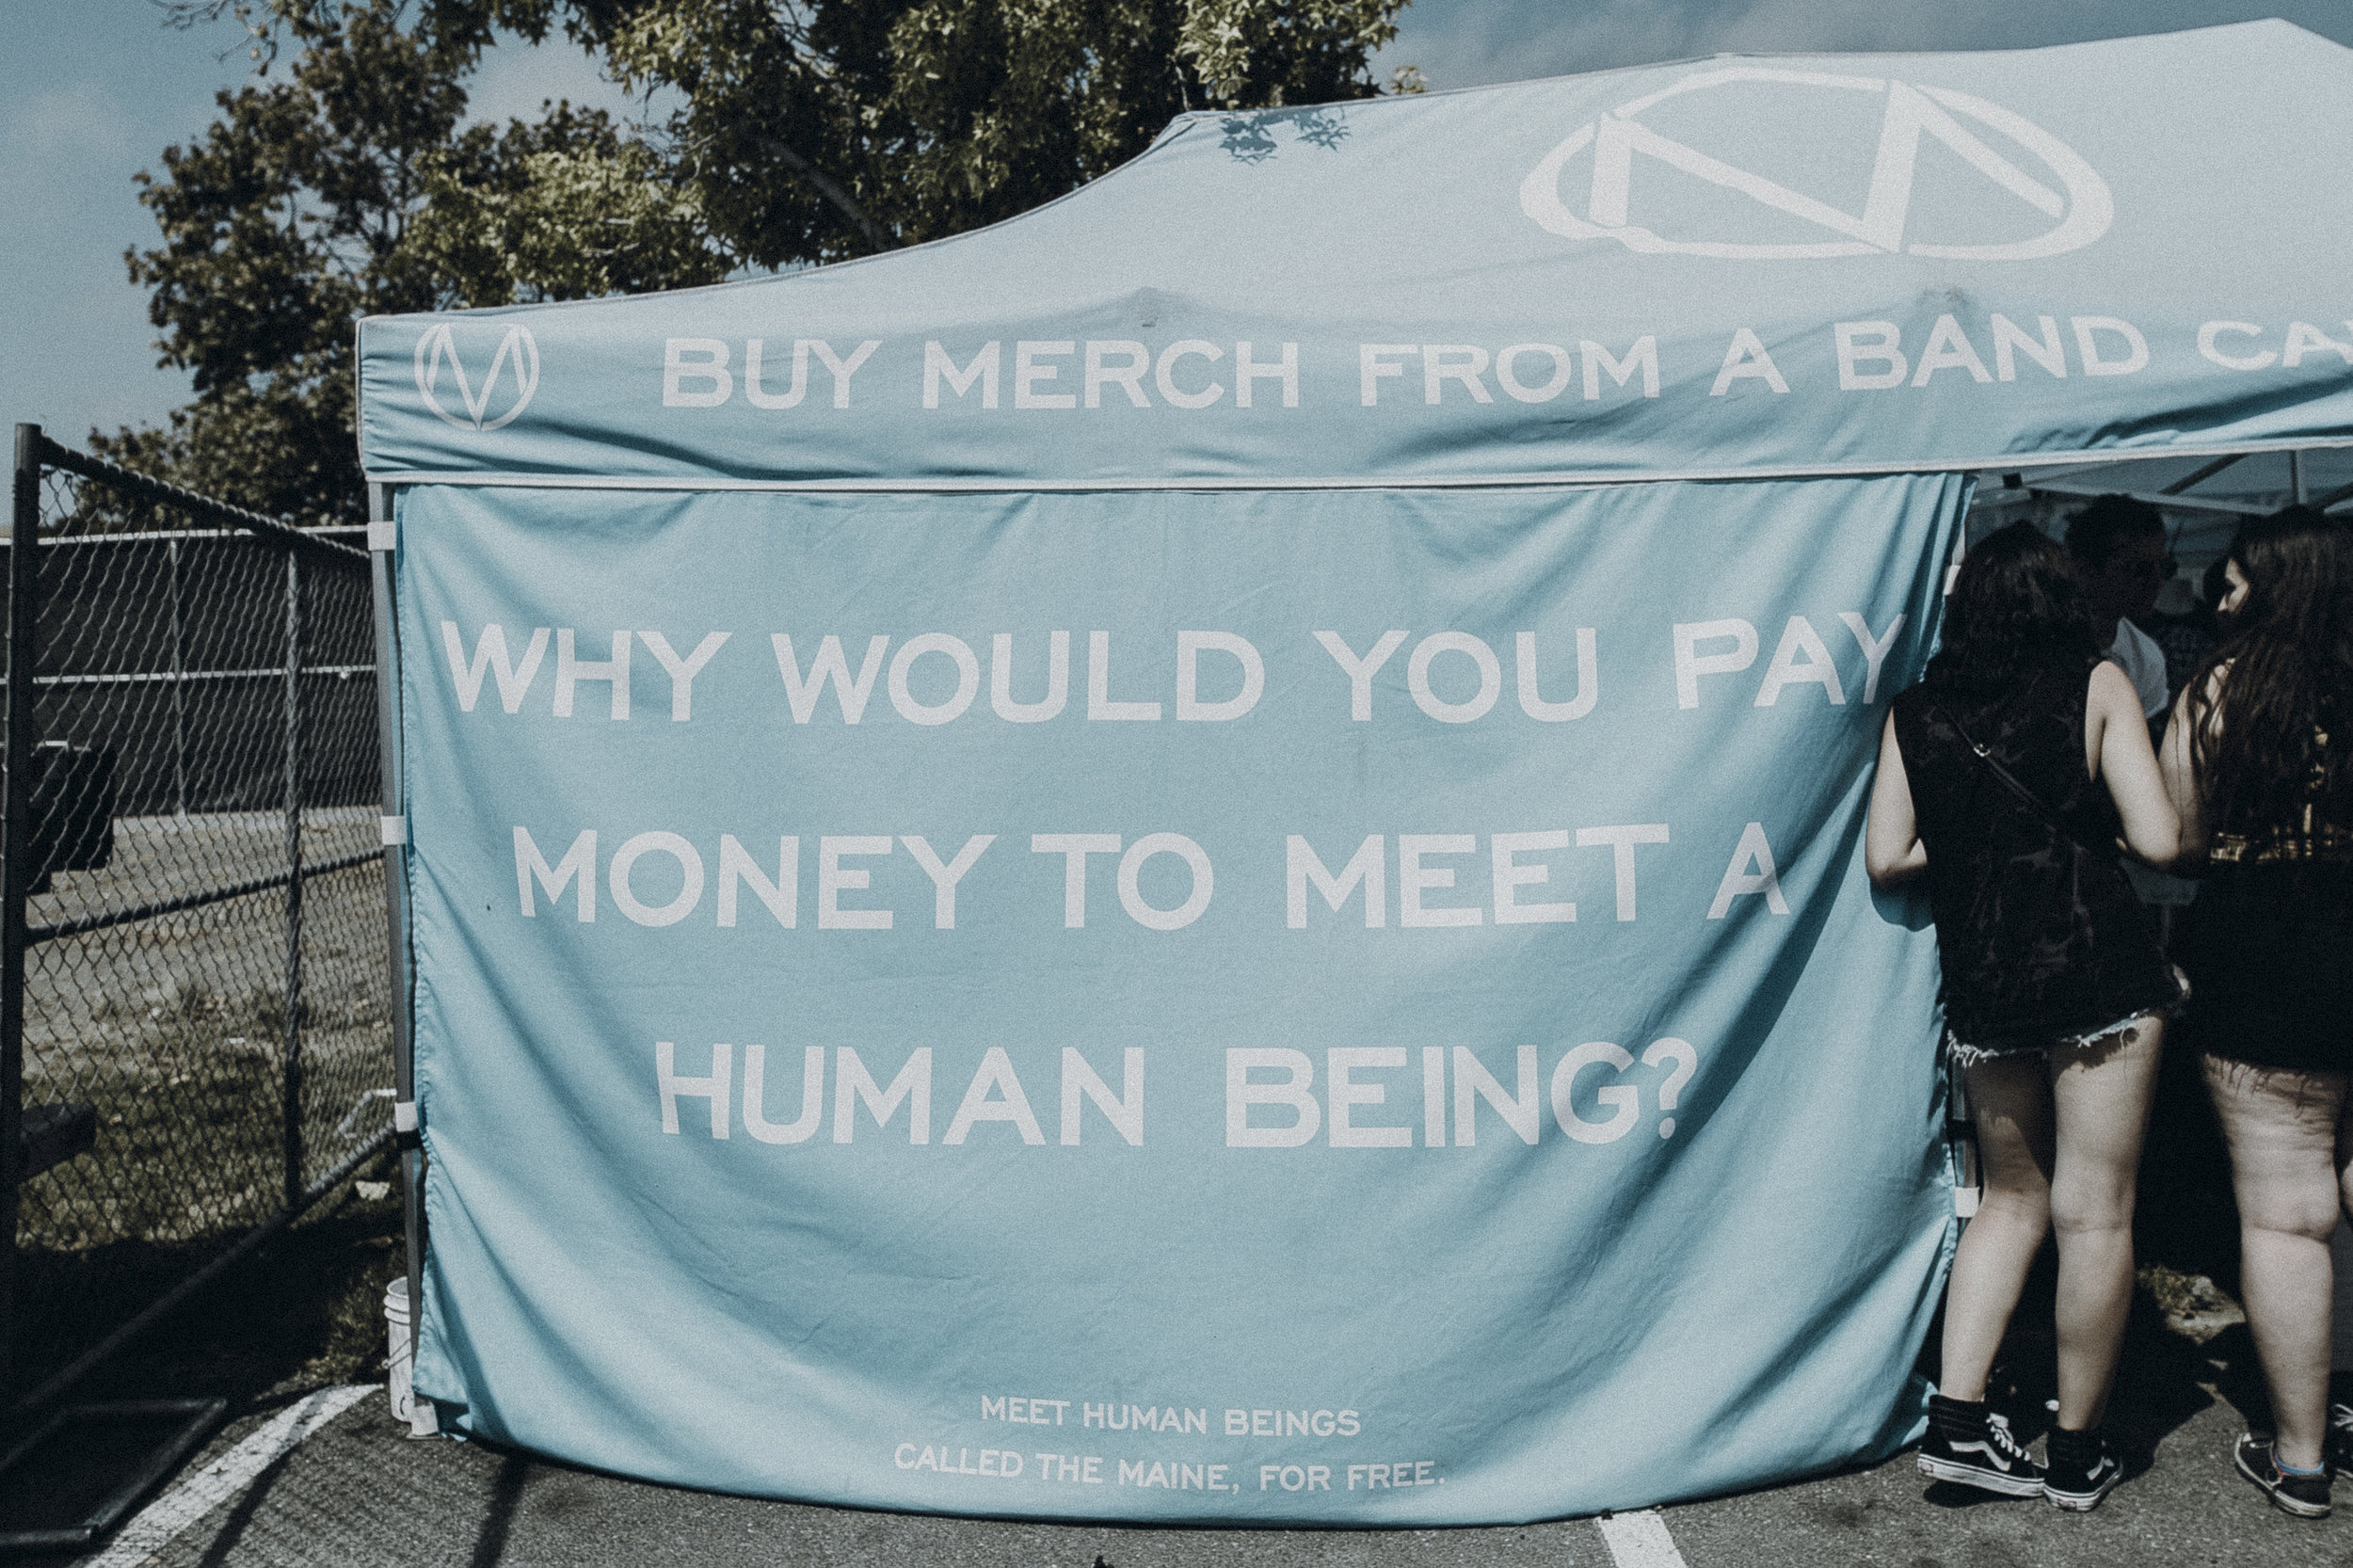 The Maine's tent, Warped 2016. Fans could easily meet members like John or Garrett here, selling merch.